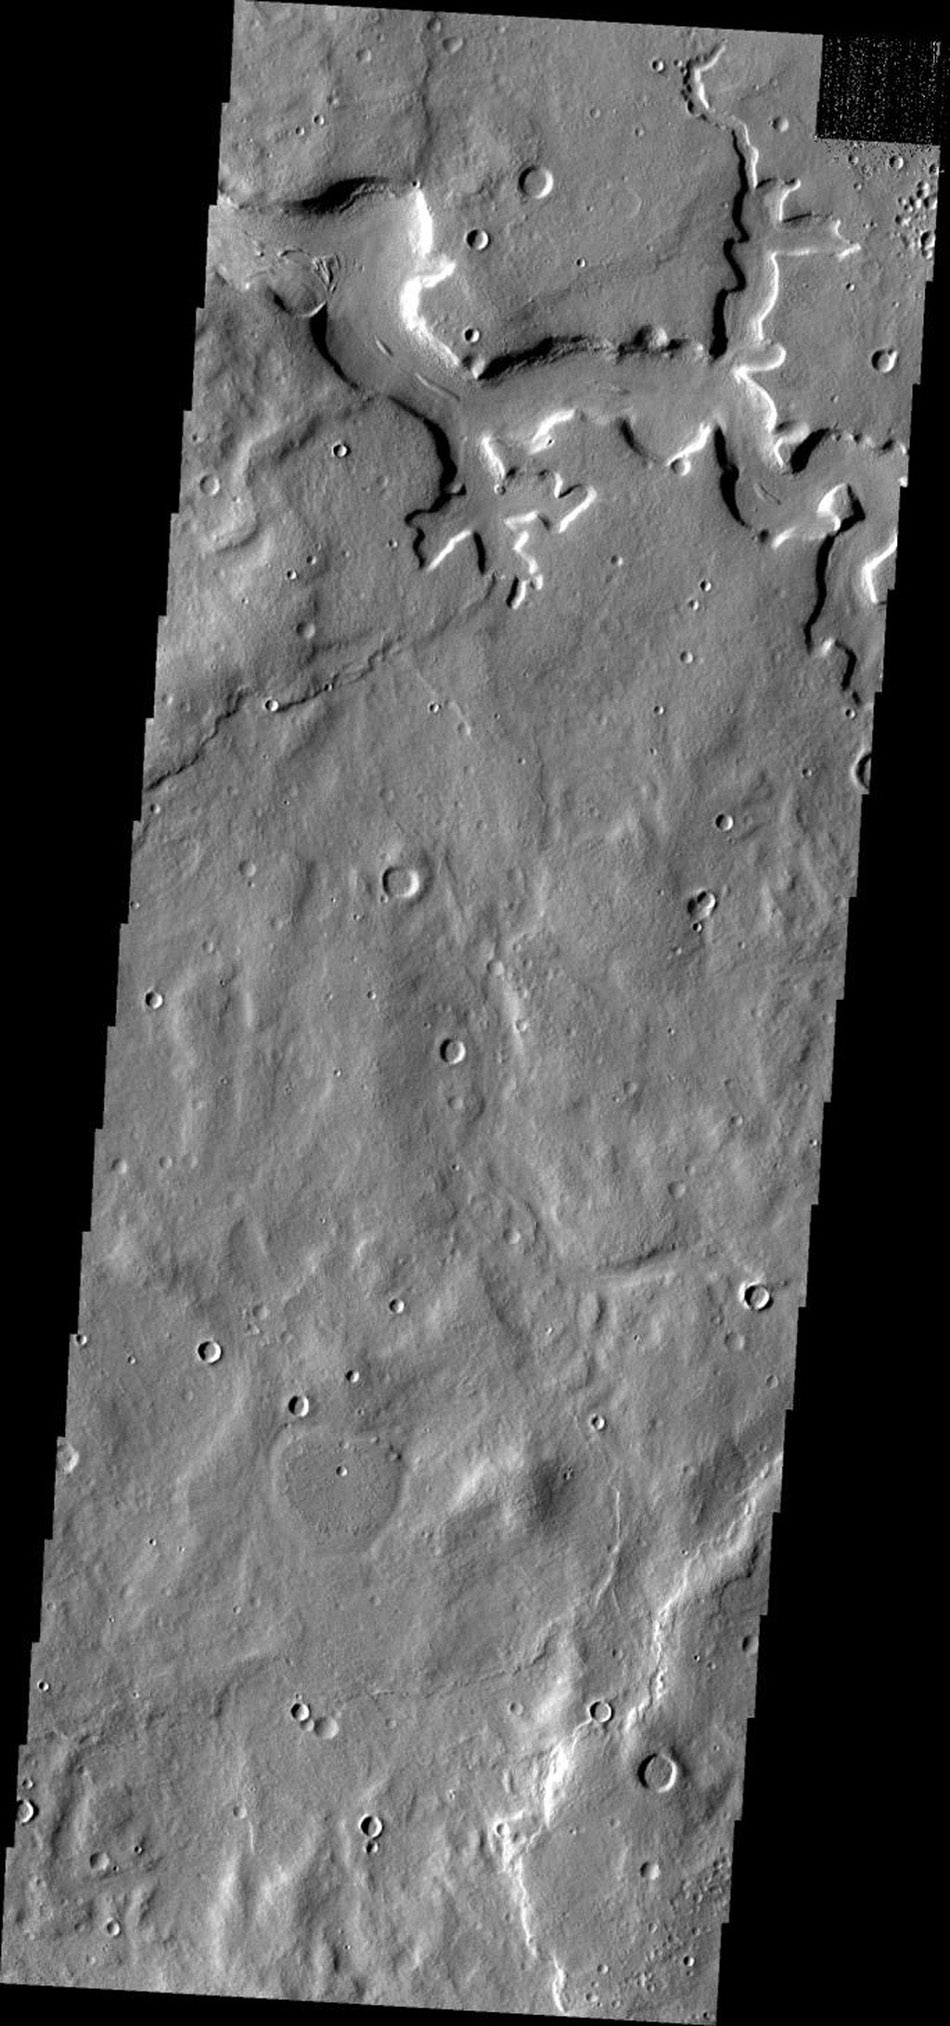 This image from NASA's Mars Odyssey shows a portion of an unnamed channel located in northern Terra Sabaea on Mars.